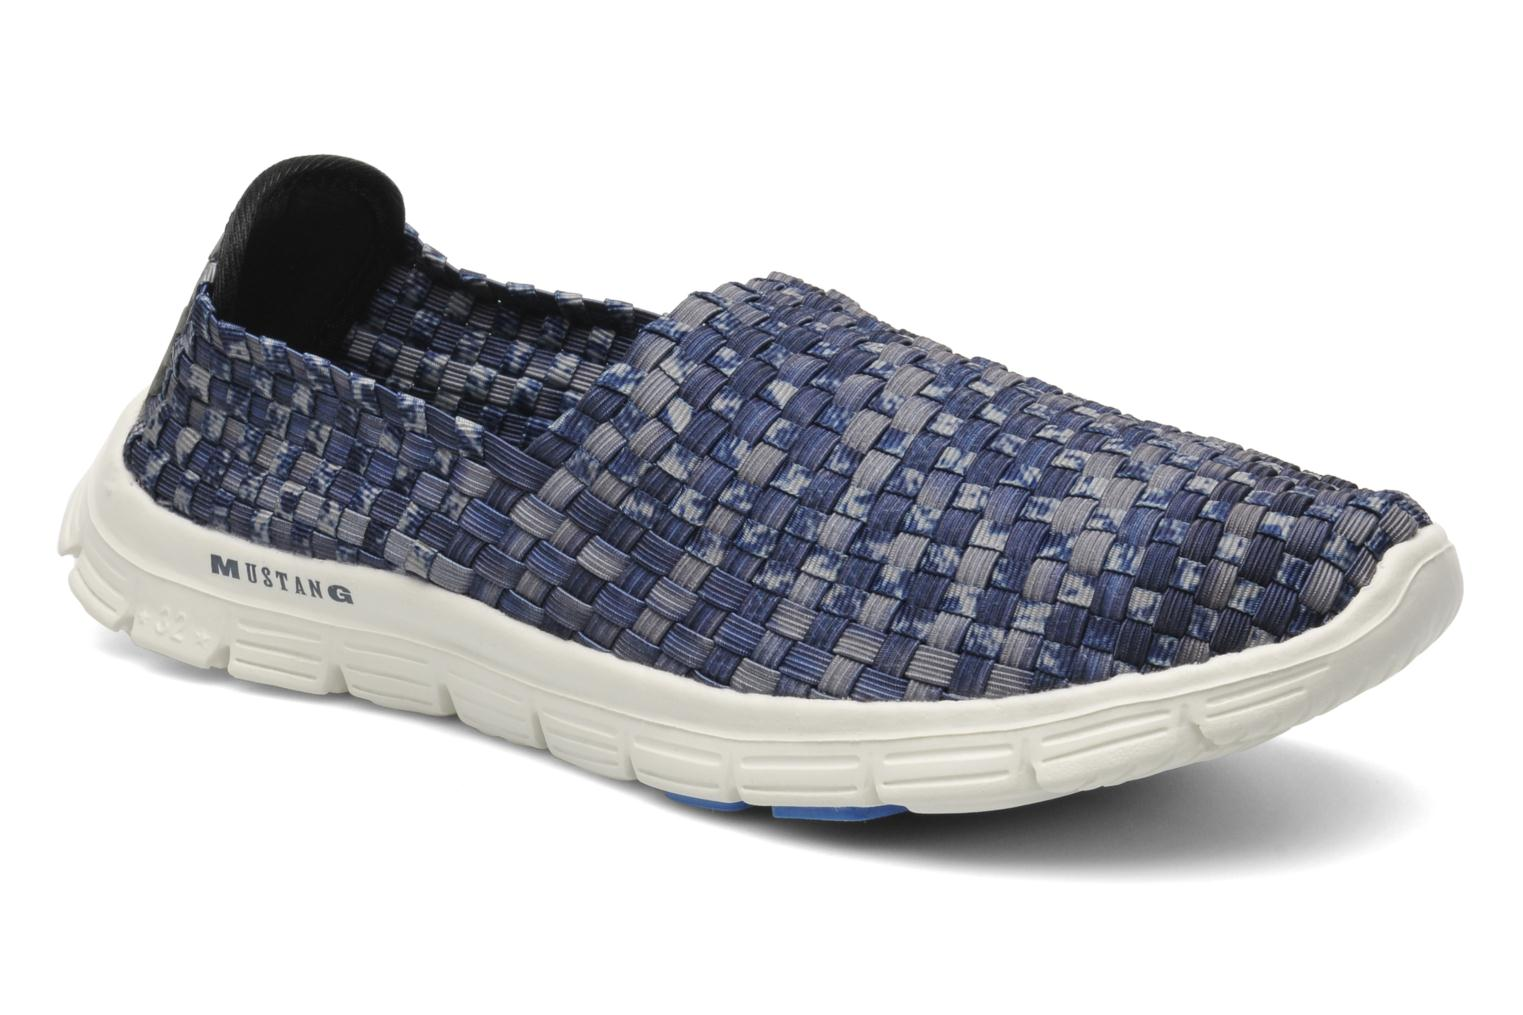 Sneakers Lidor by Mustang shoes